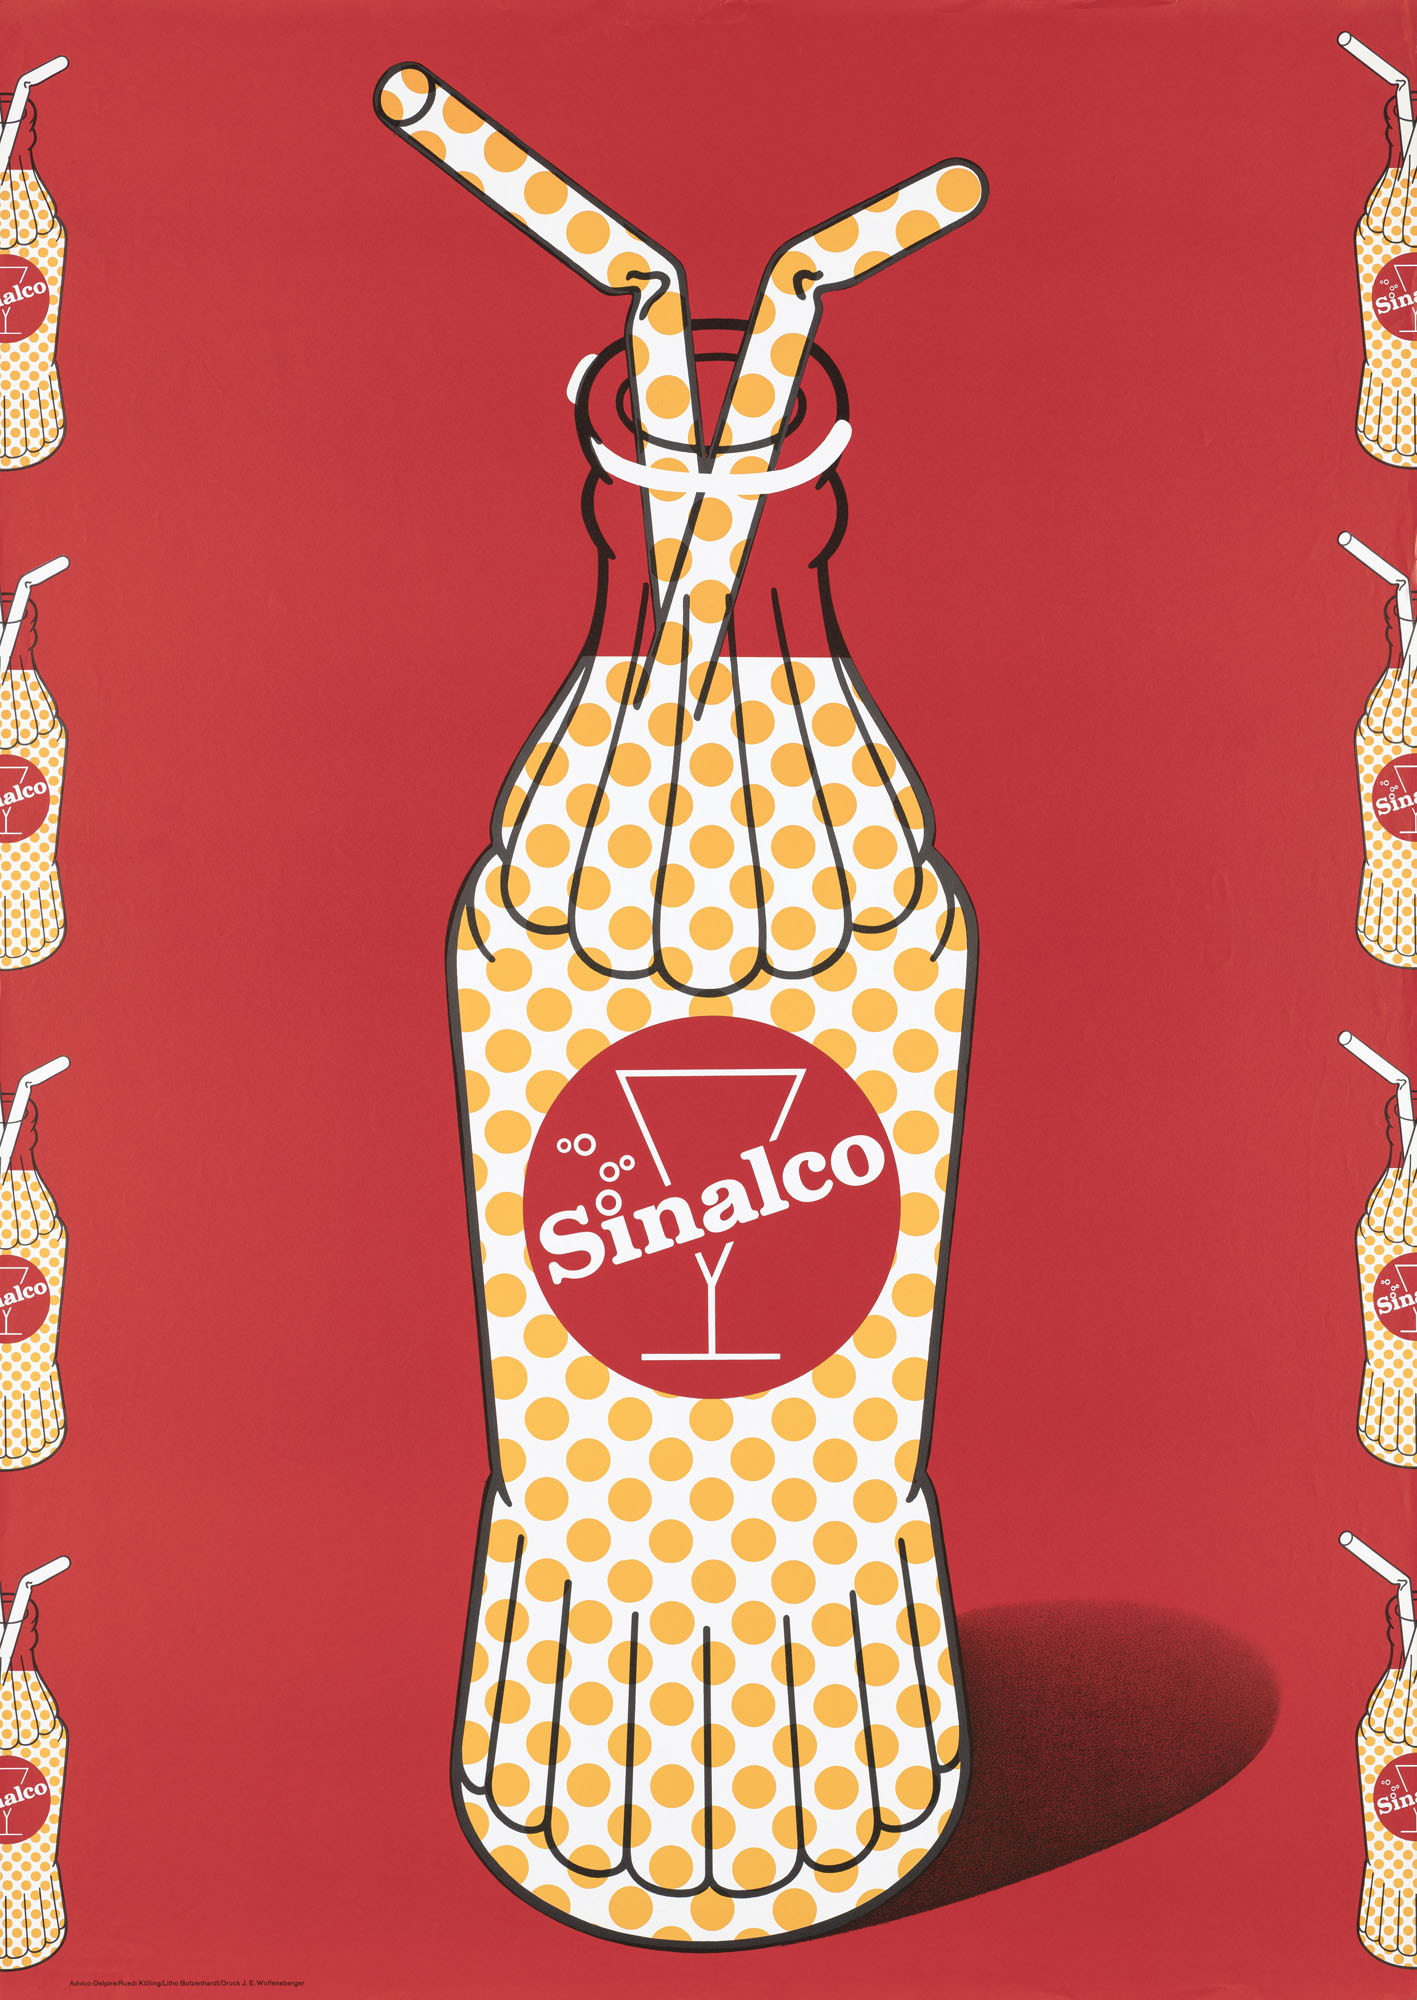 Sinalco Peter Emch Poster